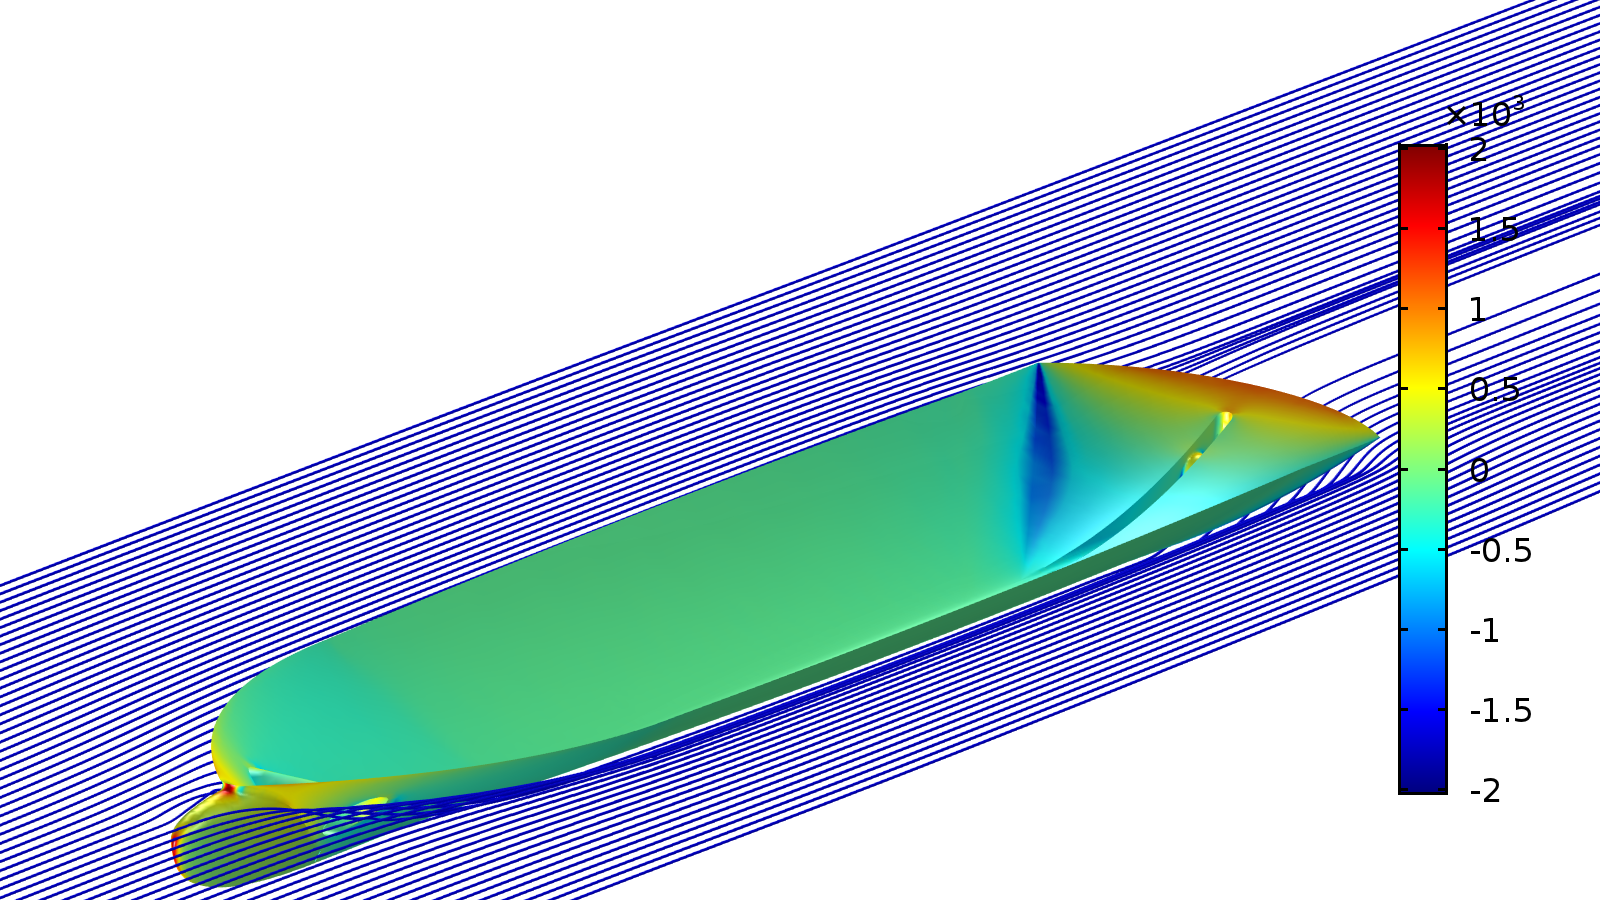 Figure 4: COMSOL Streamline and Surface Contour Plot